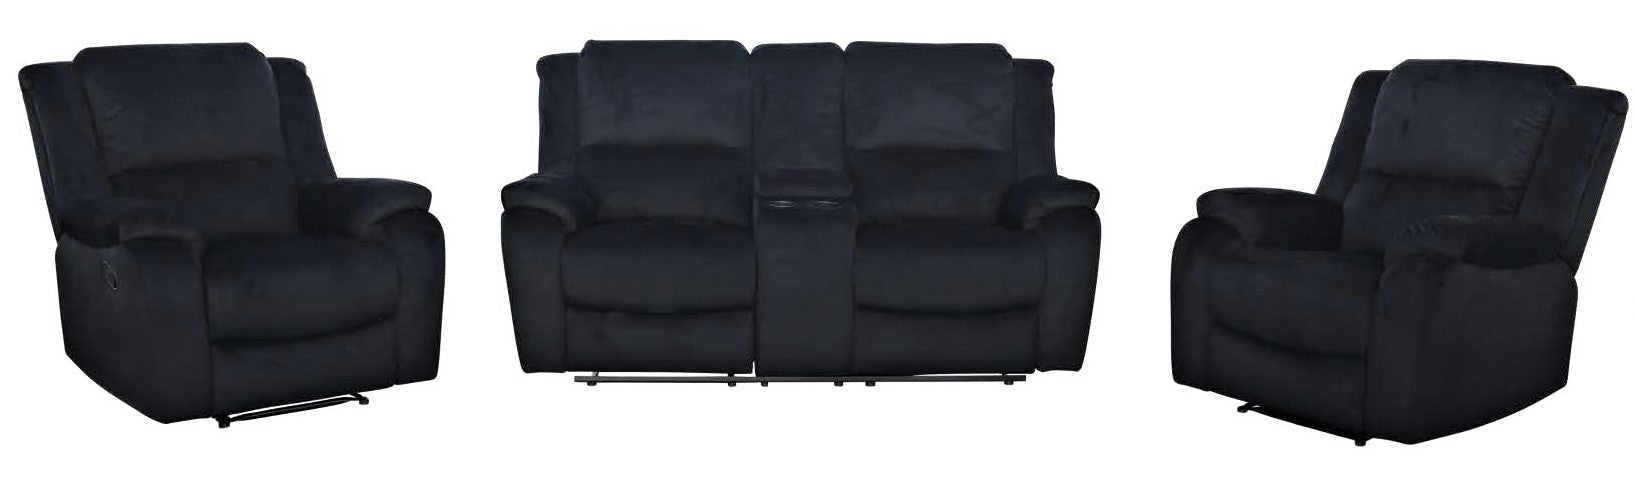 Austin 2 Seater Recliner Lounge